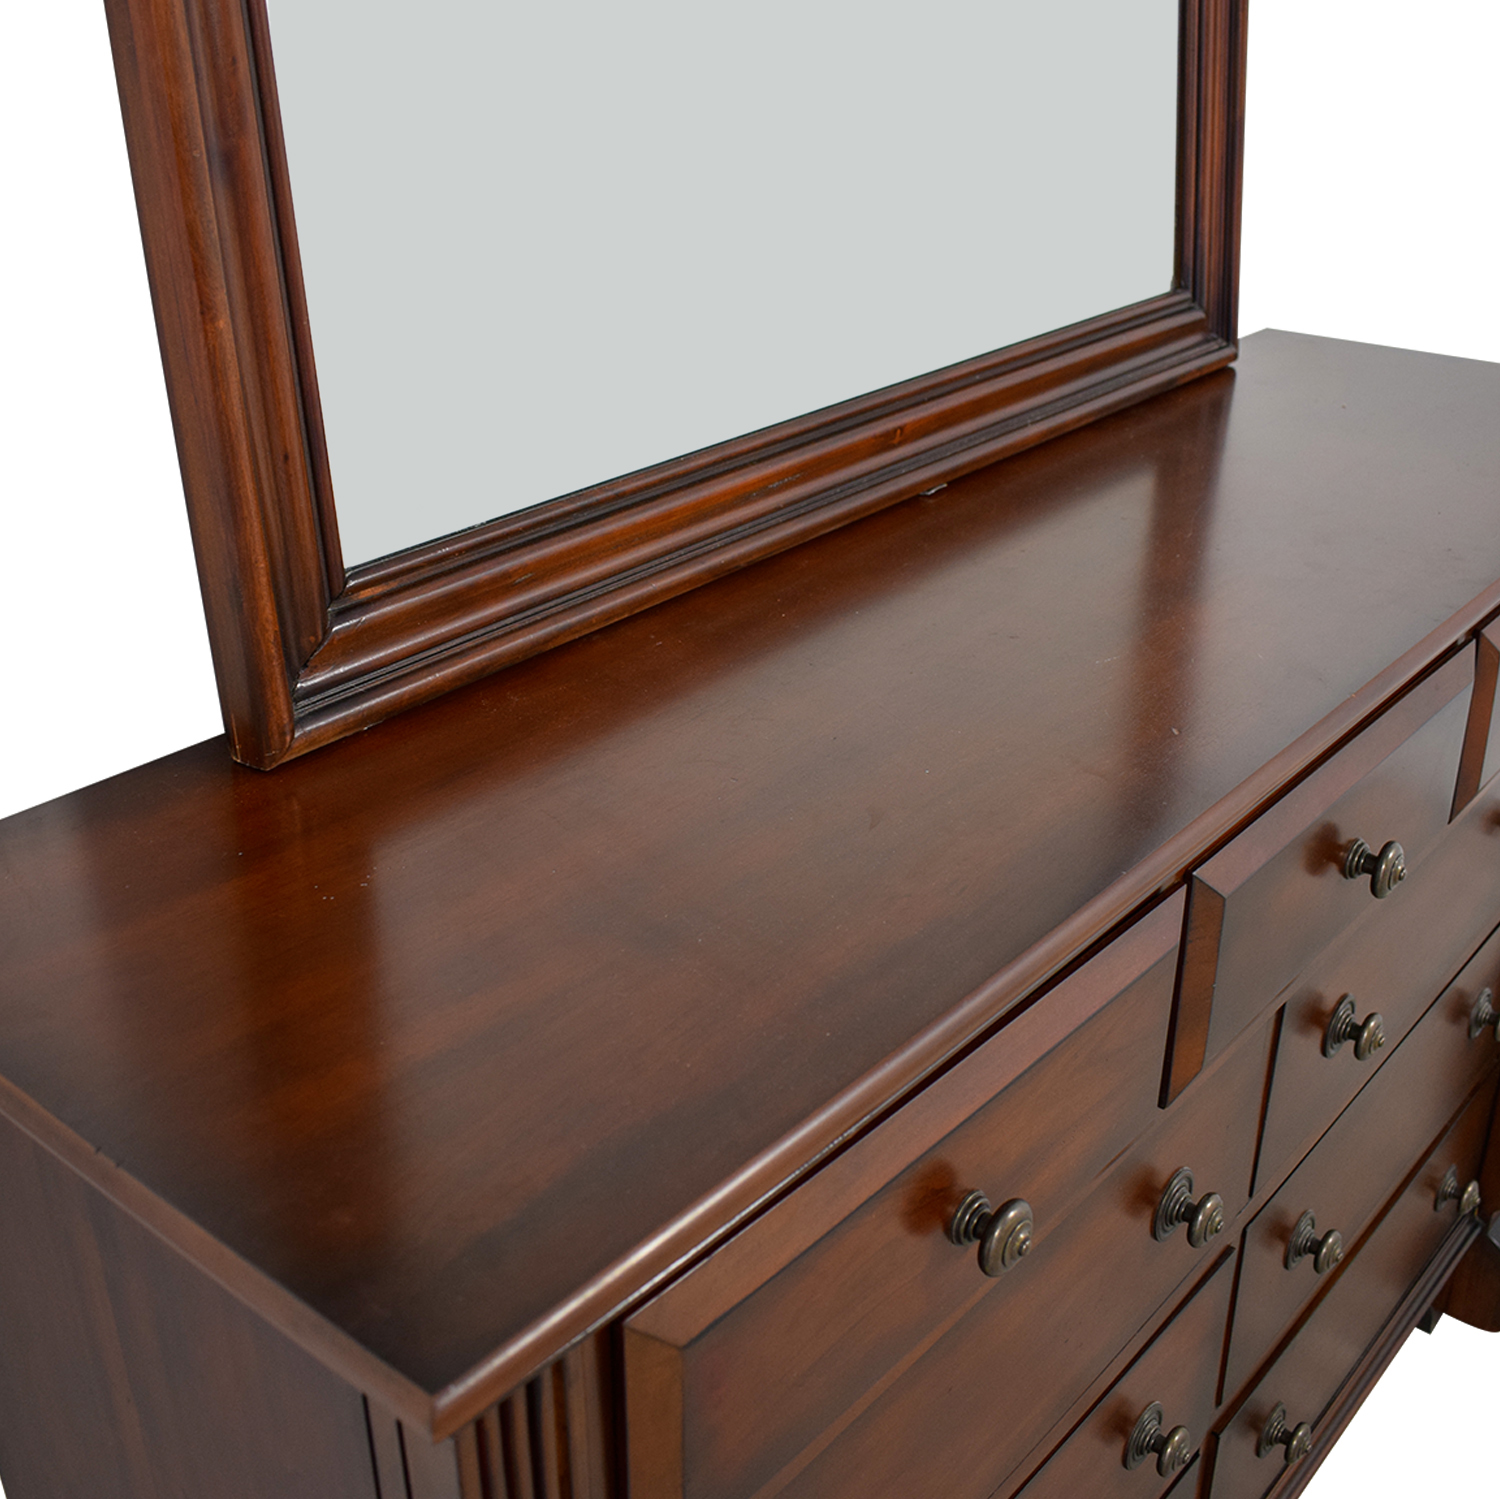 Bob's Furniture Bob's Furniture Nine-Drawer Dresser with Mirror coupon